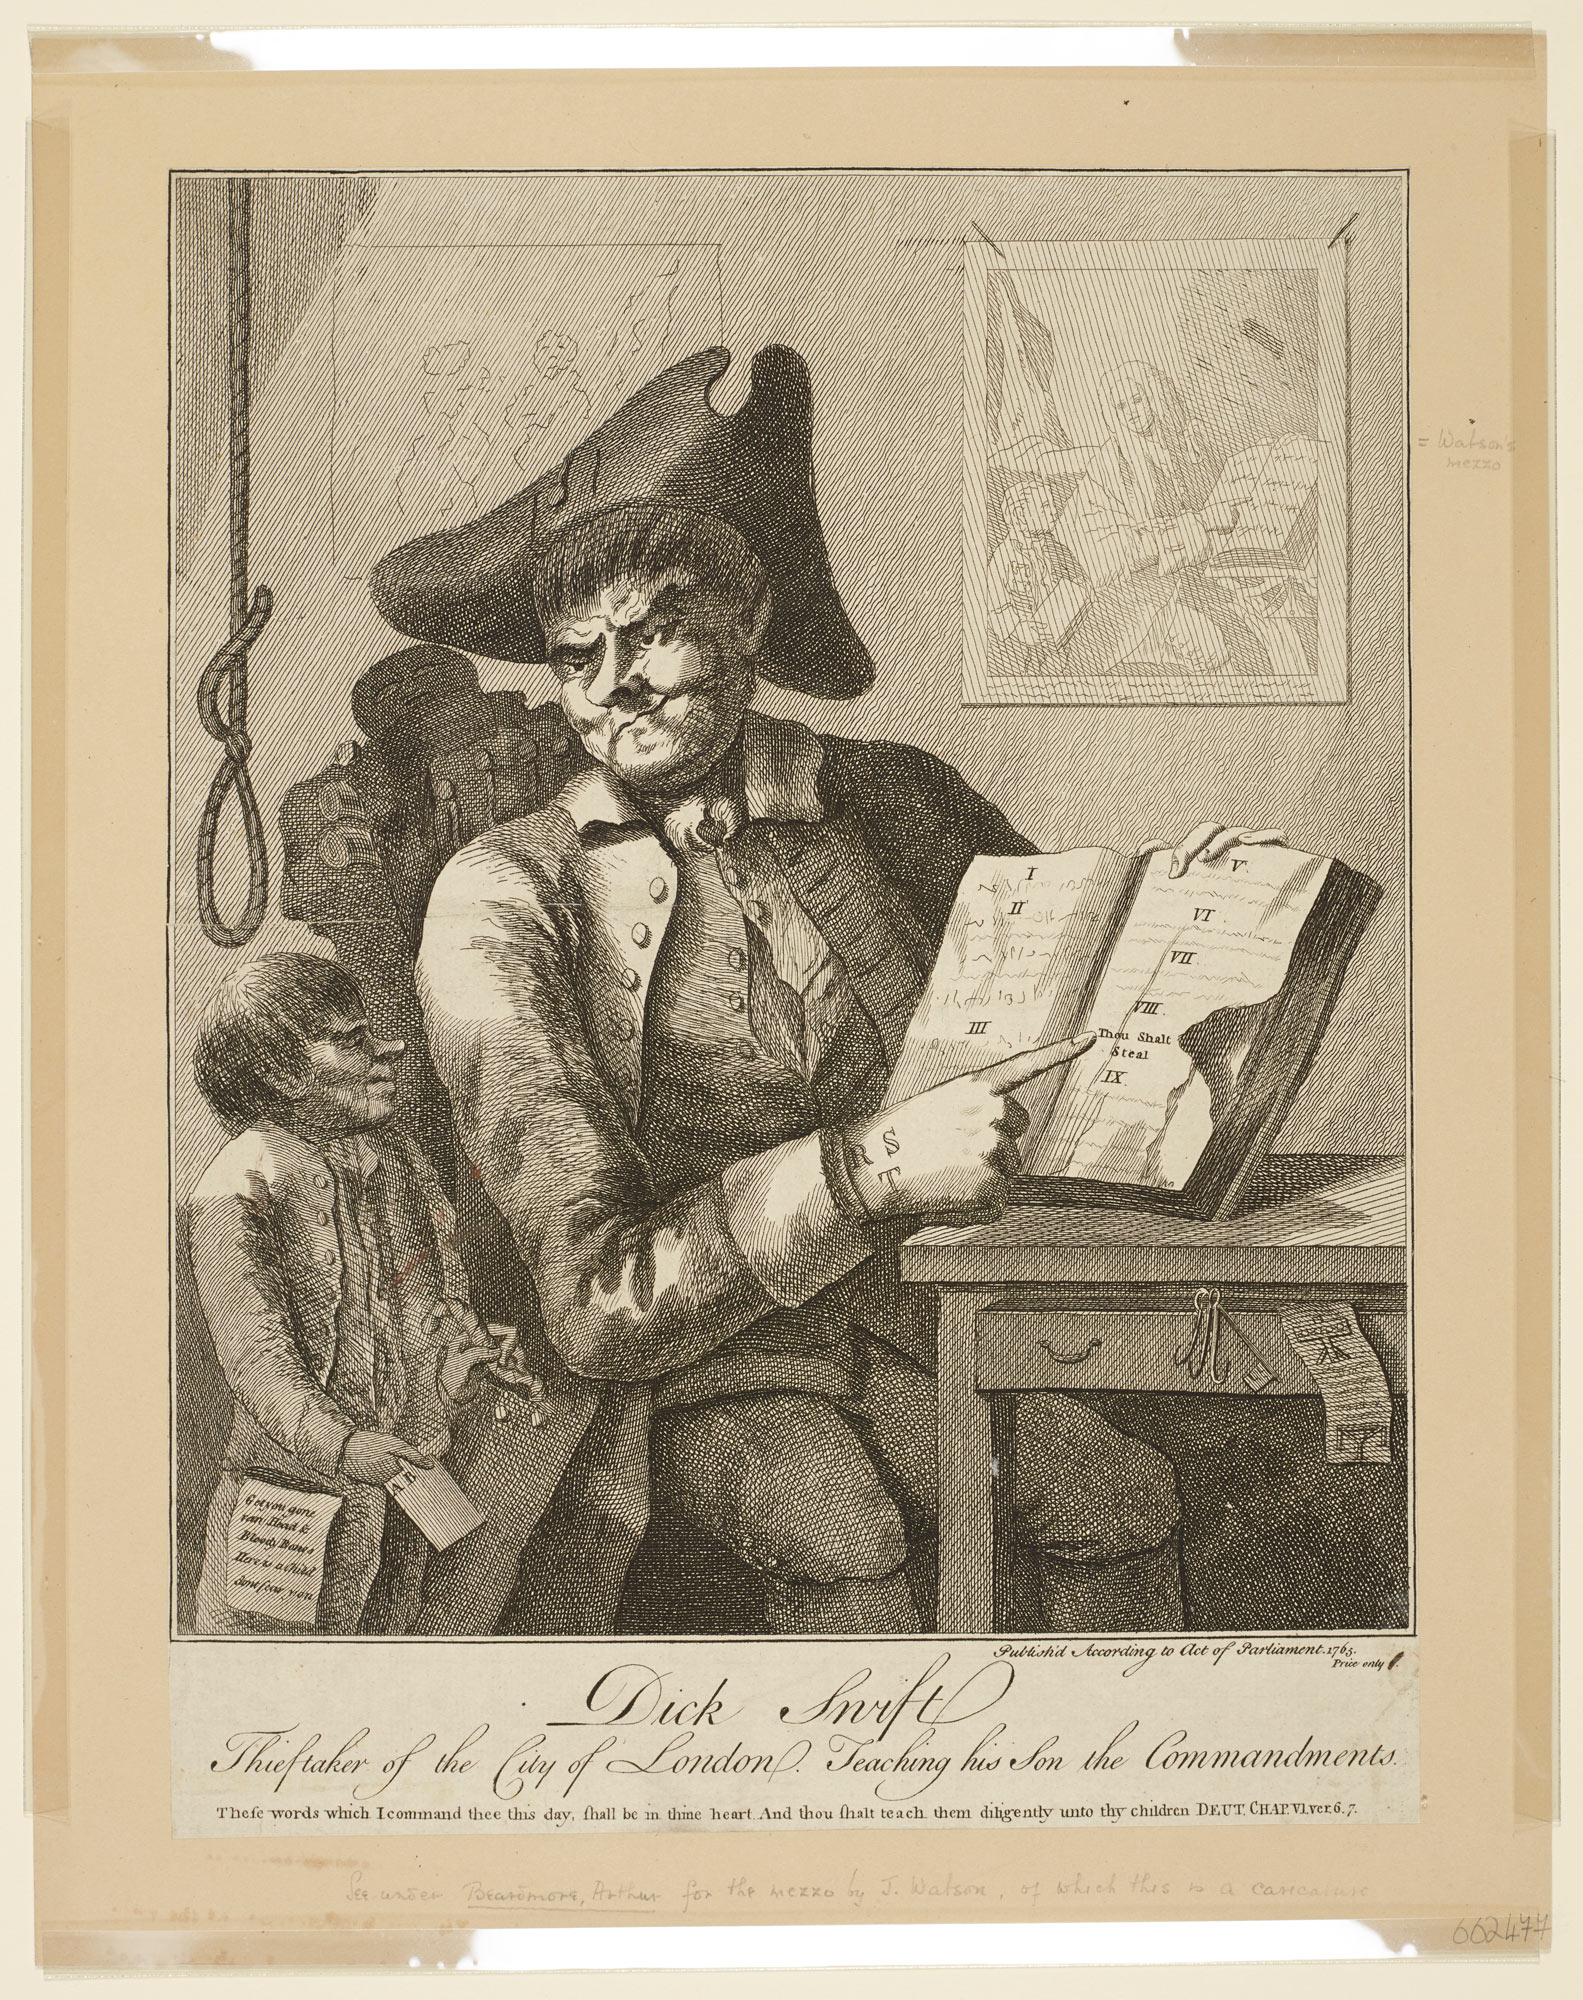 Print of 'Dick Swift Thieftaker of the City of London Teaching his Son the Commandments'